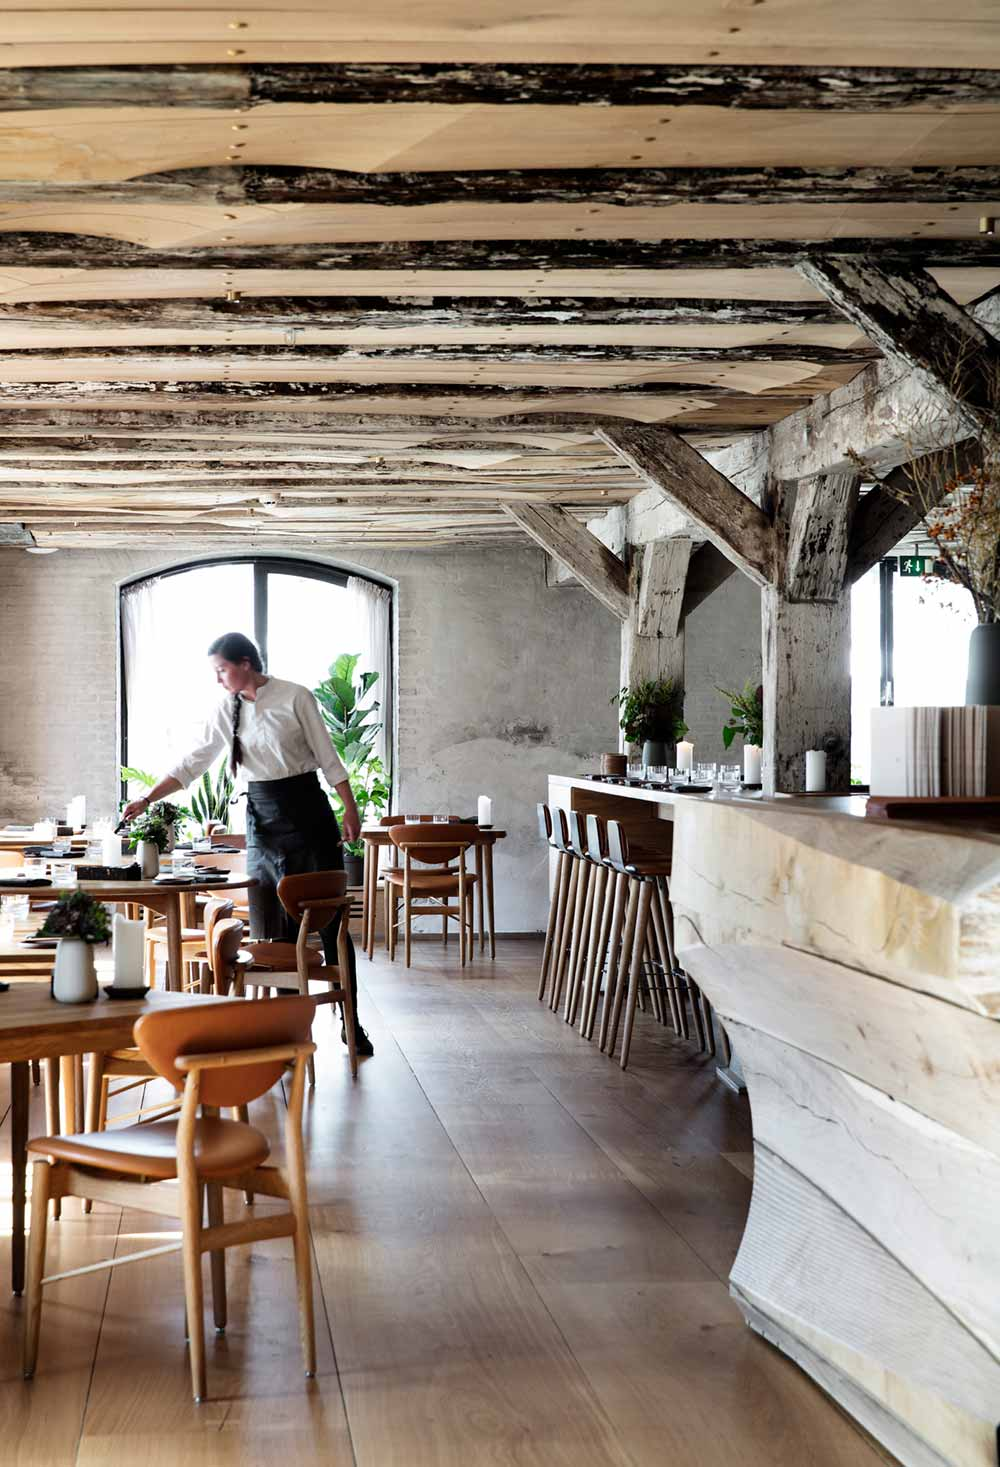 Barr rustic restaurant interior design in copenhagen